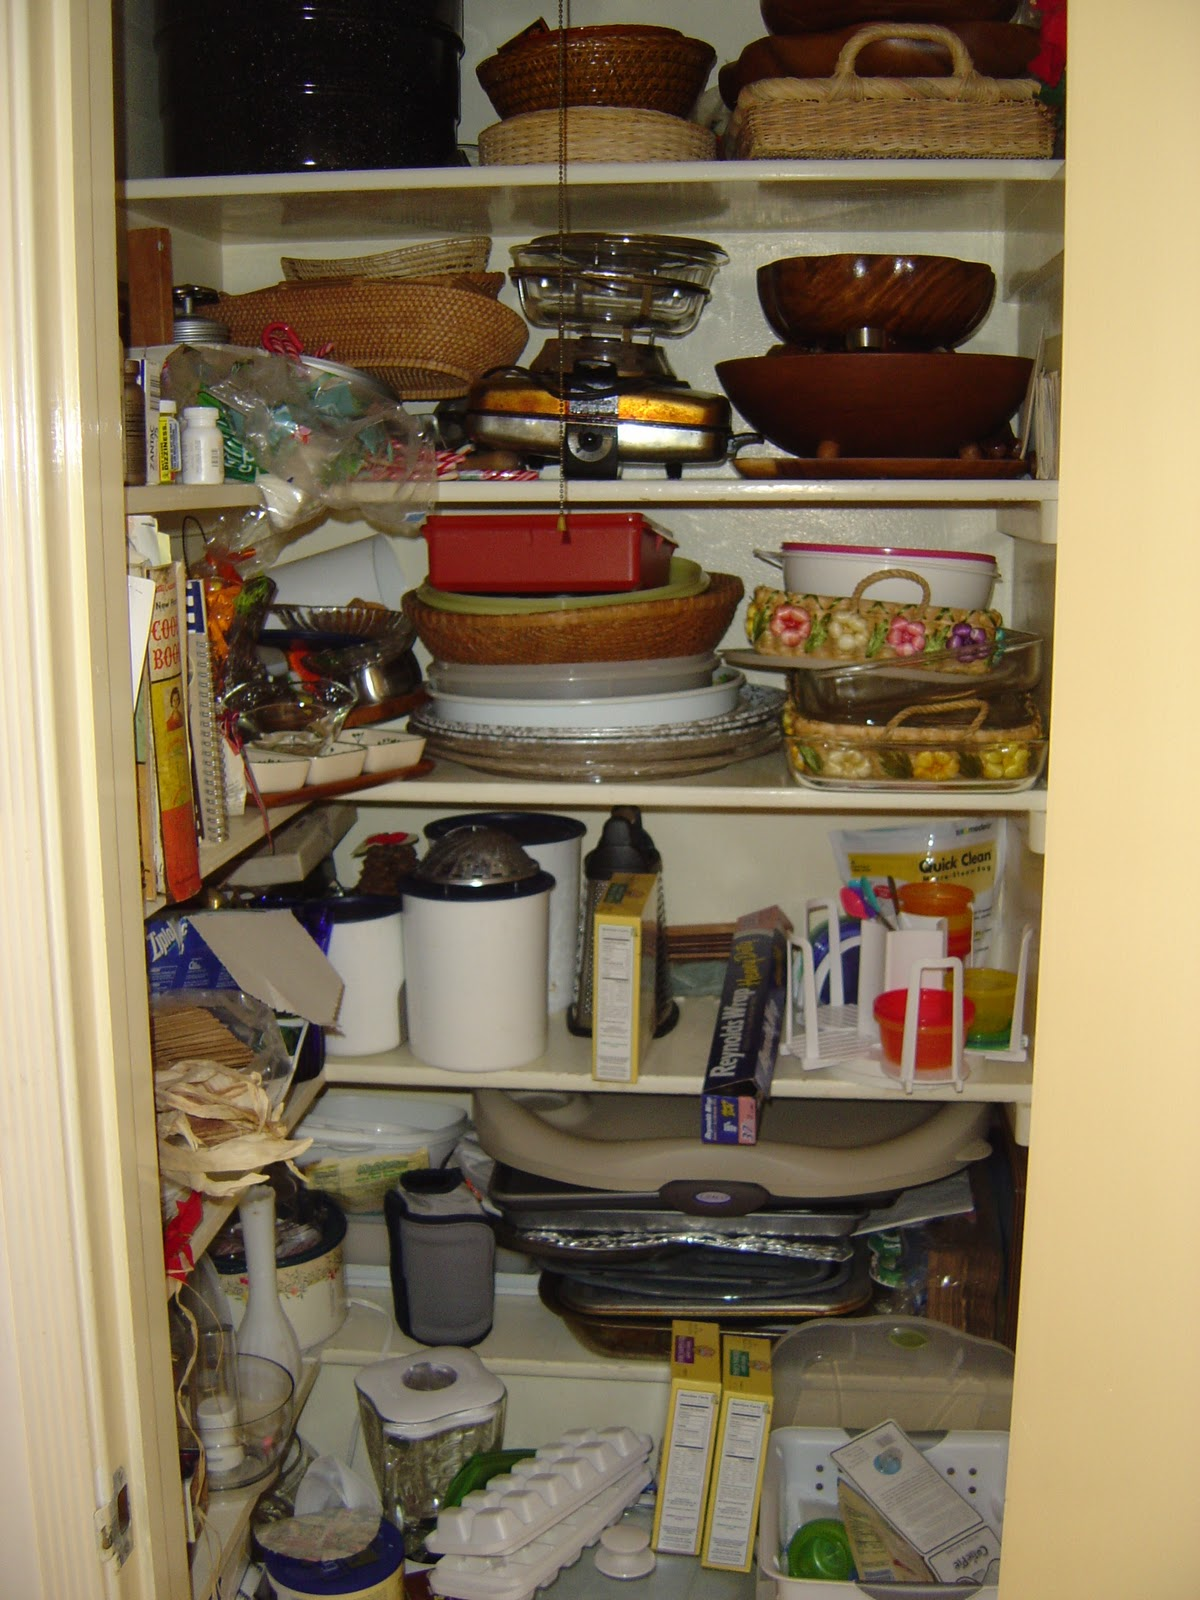 For Organizing Kitchen How I Organize My Kitchen The Pantry Organizing Made Fun How I